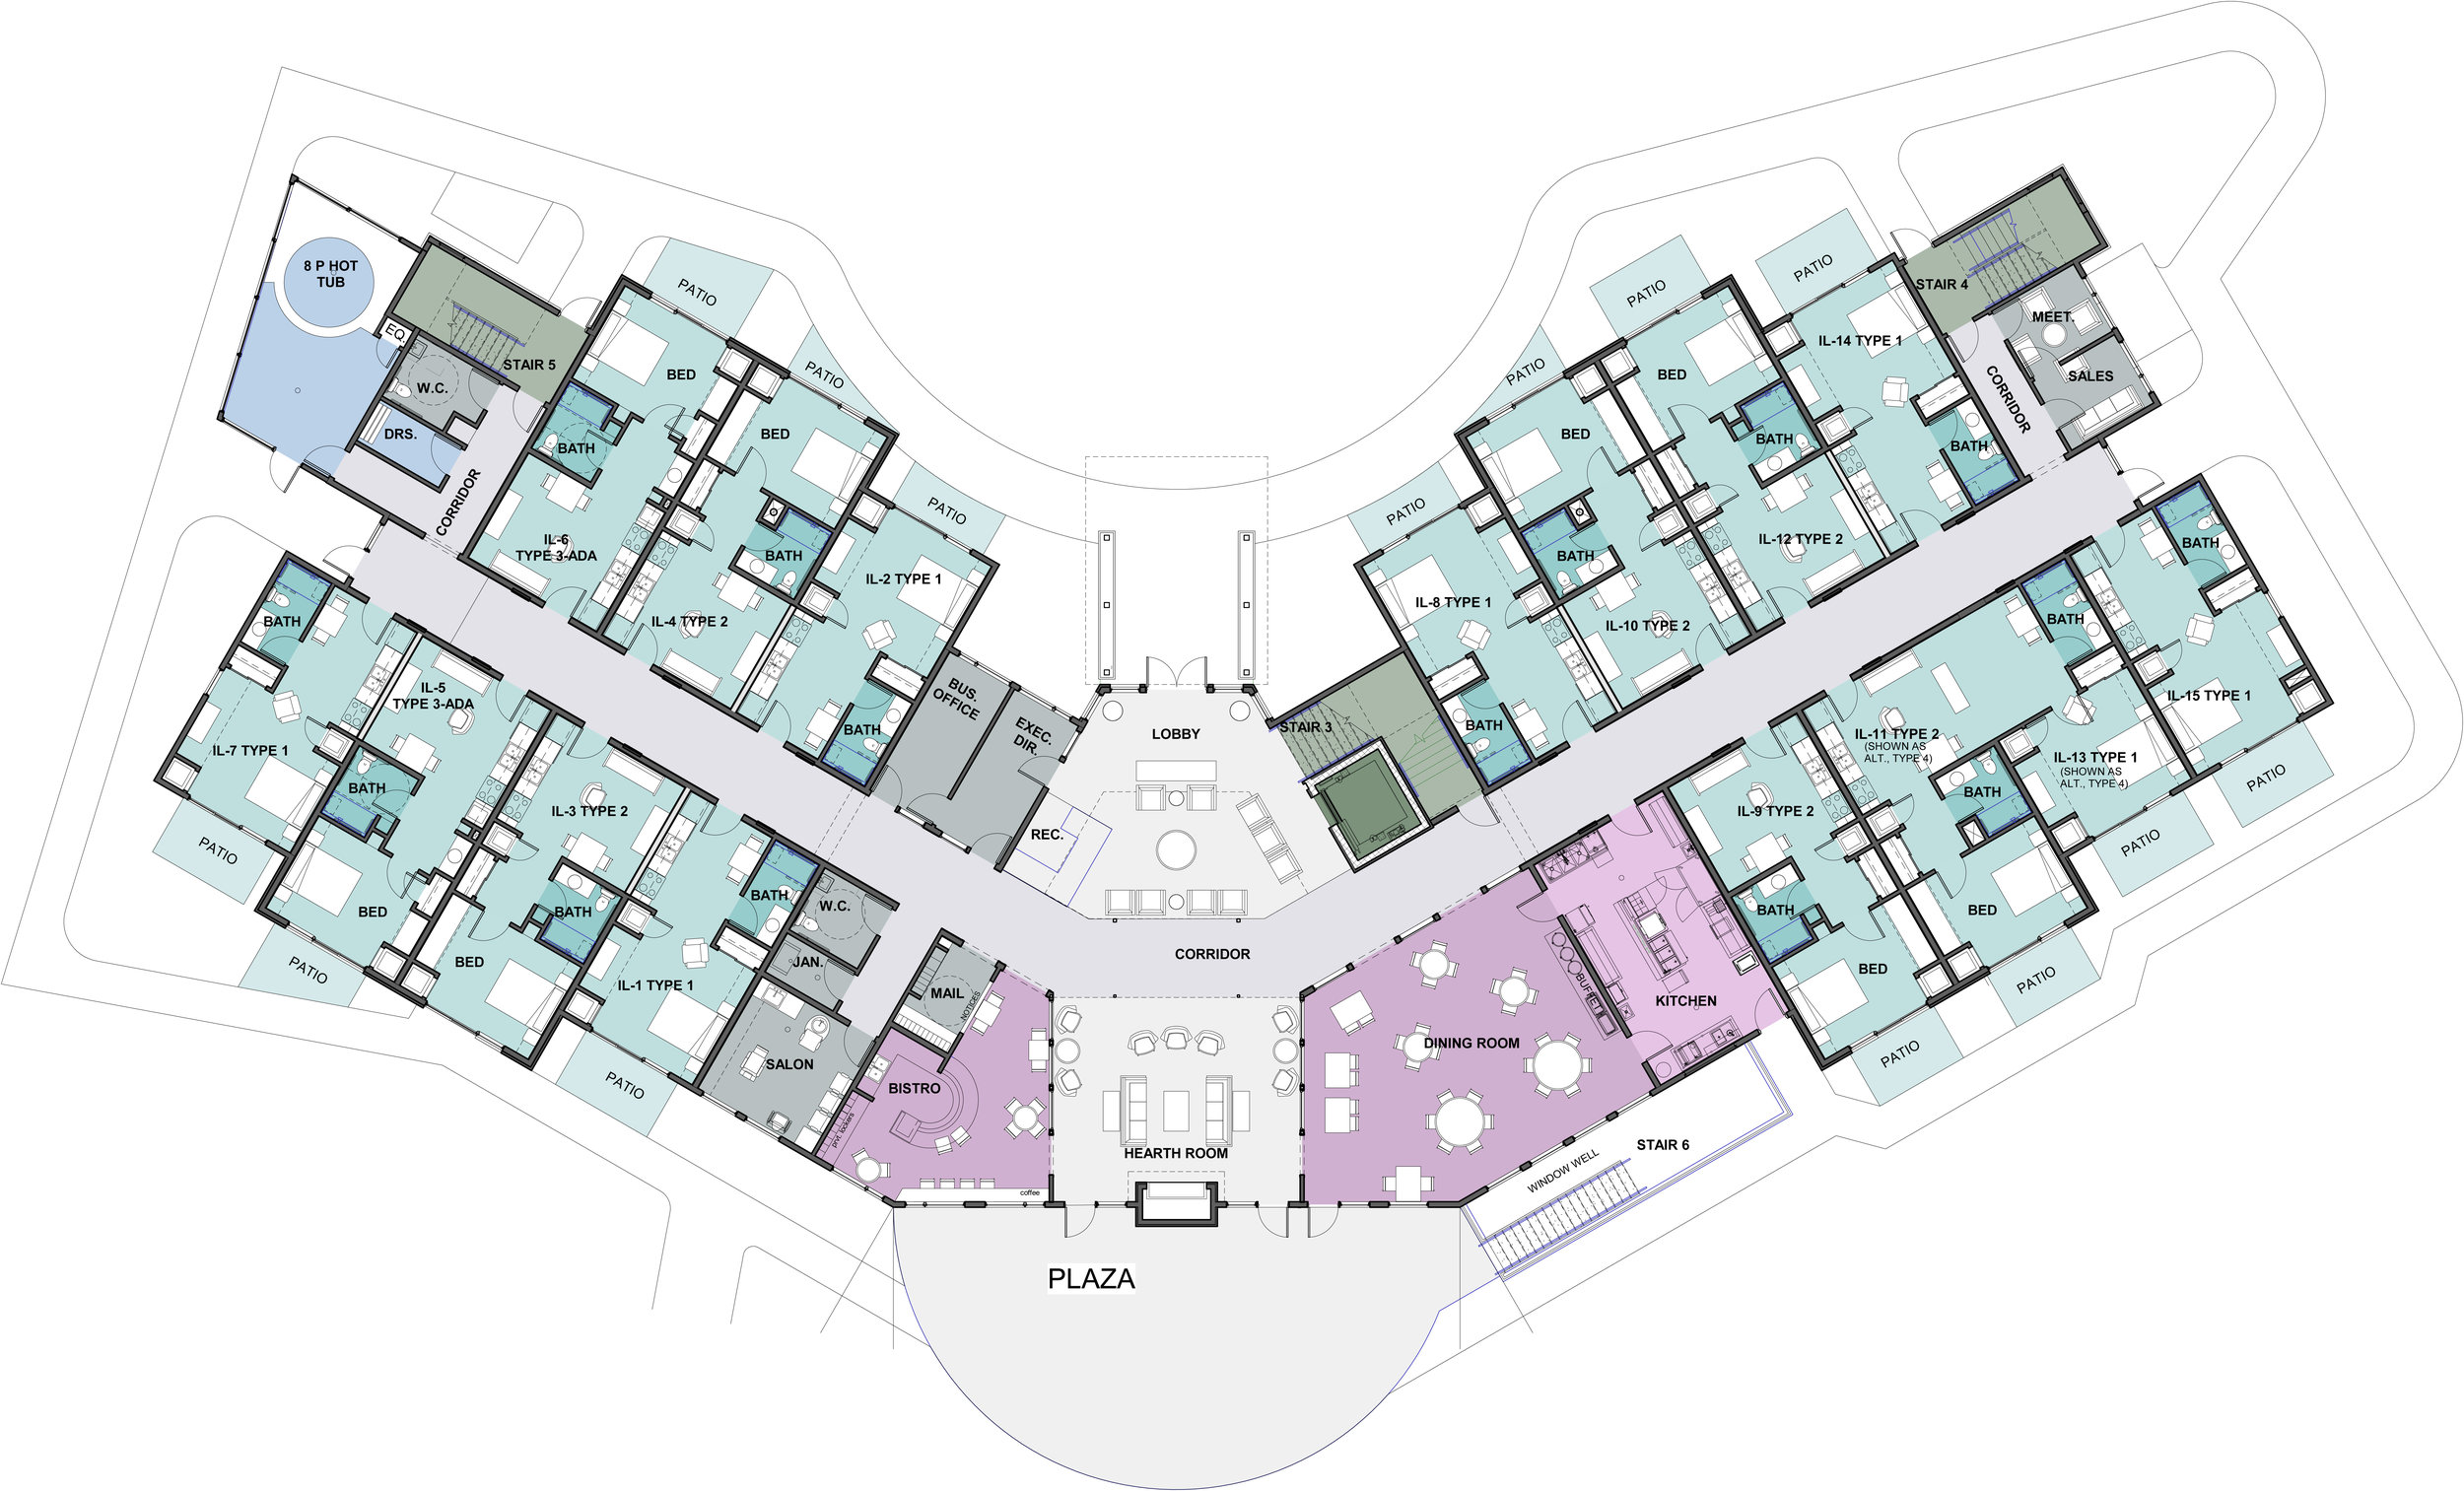 Open House SLAL Bldg B - Floor Plan - IL BLDG- - GRADE LEVEL FLOOR PLAN Copy 1.jpg